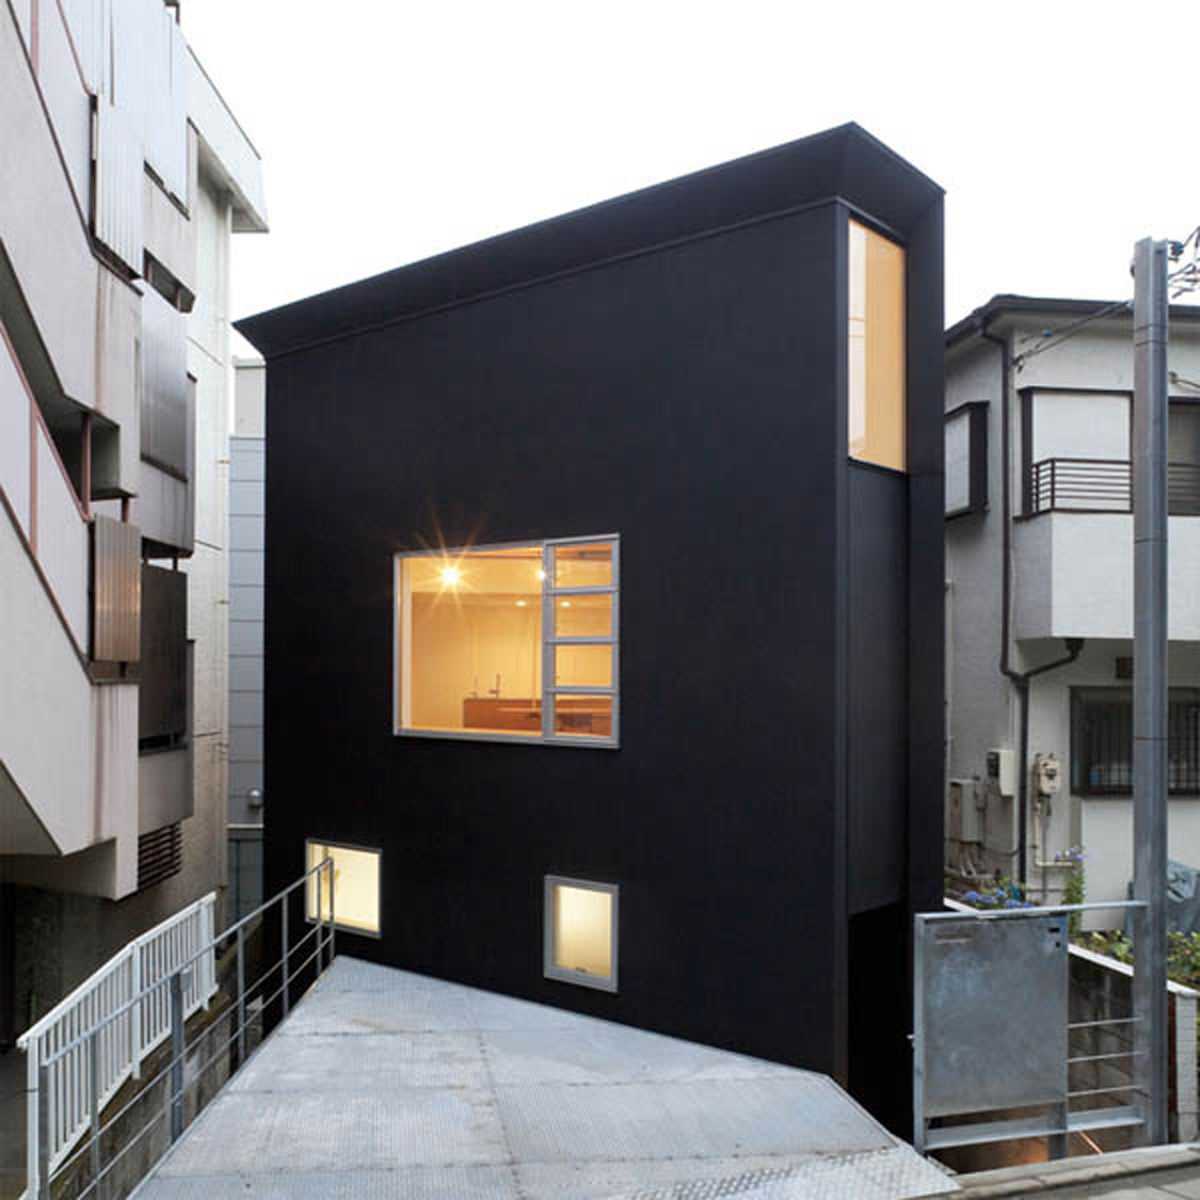 Minimalist japanese house layouts for Small minimalist house